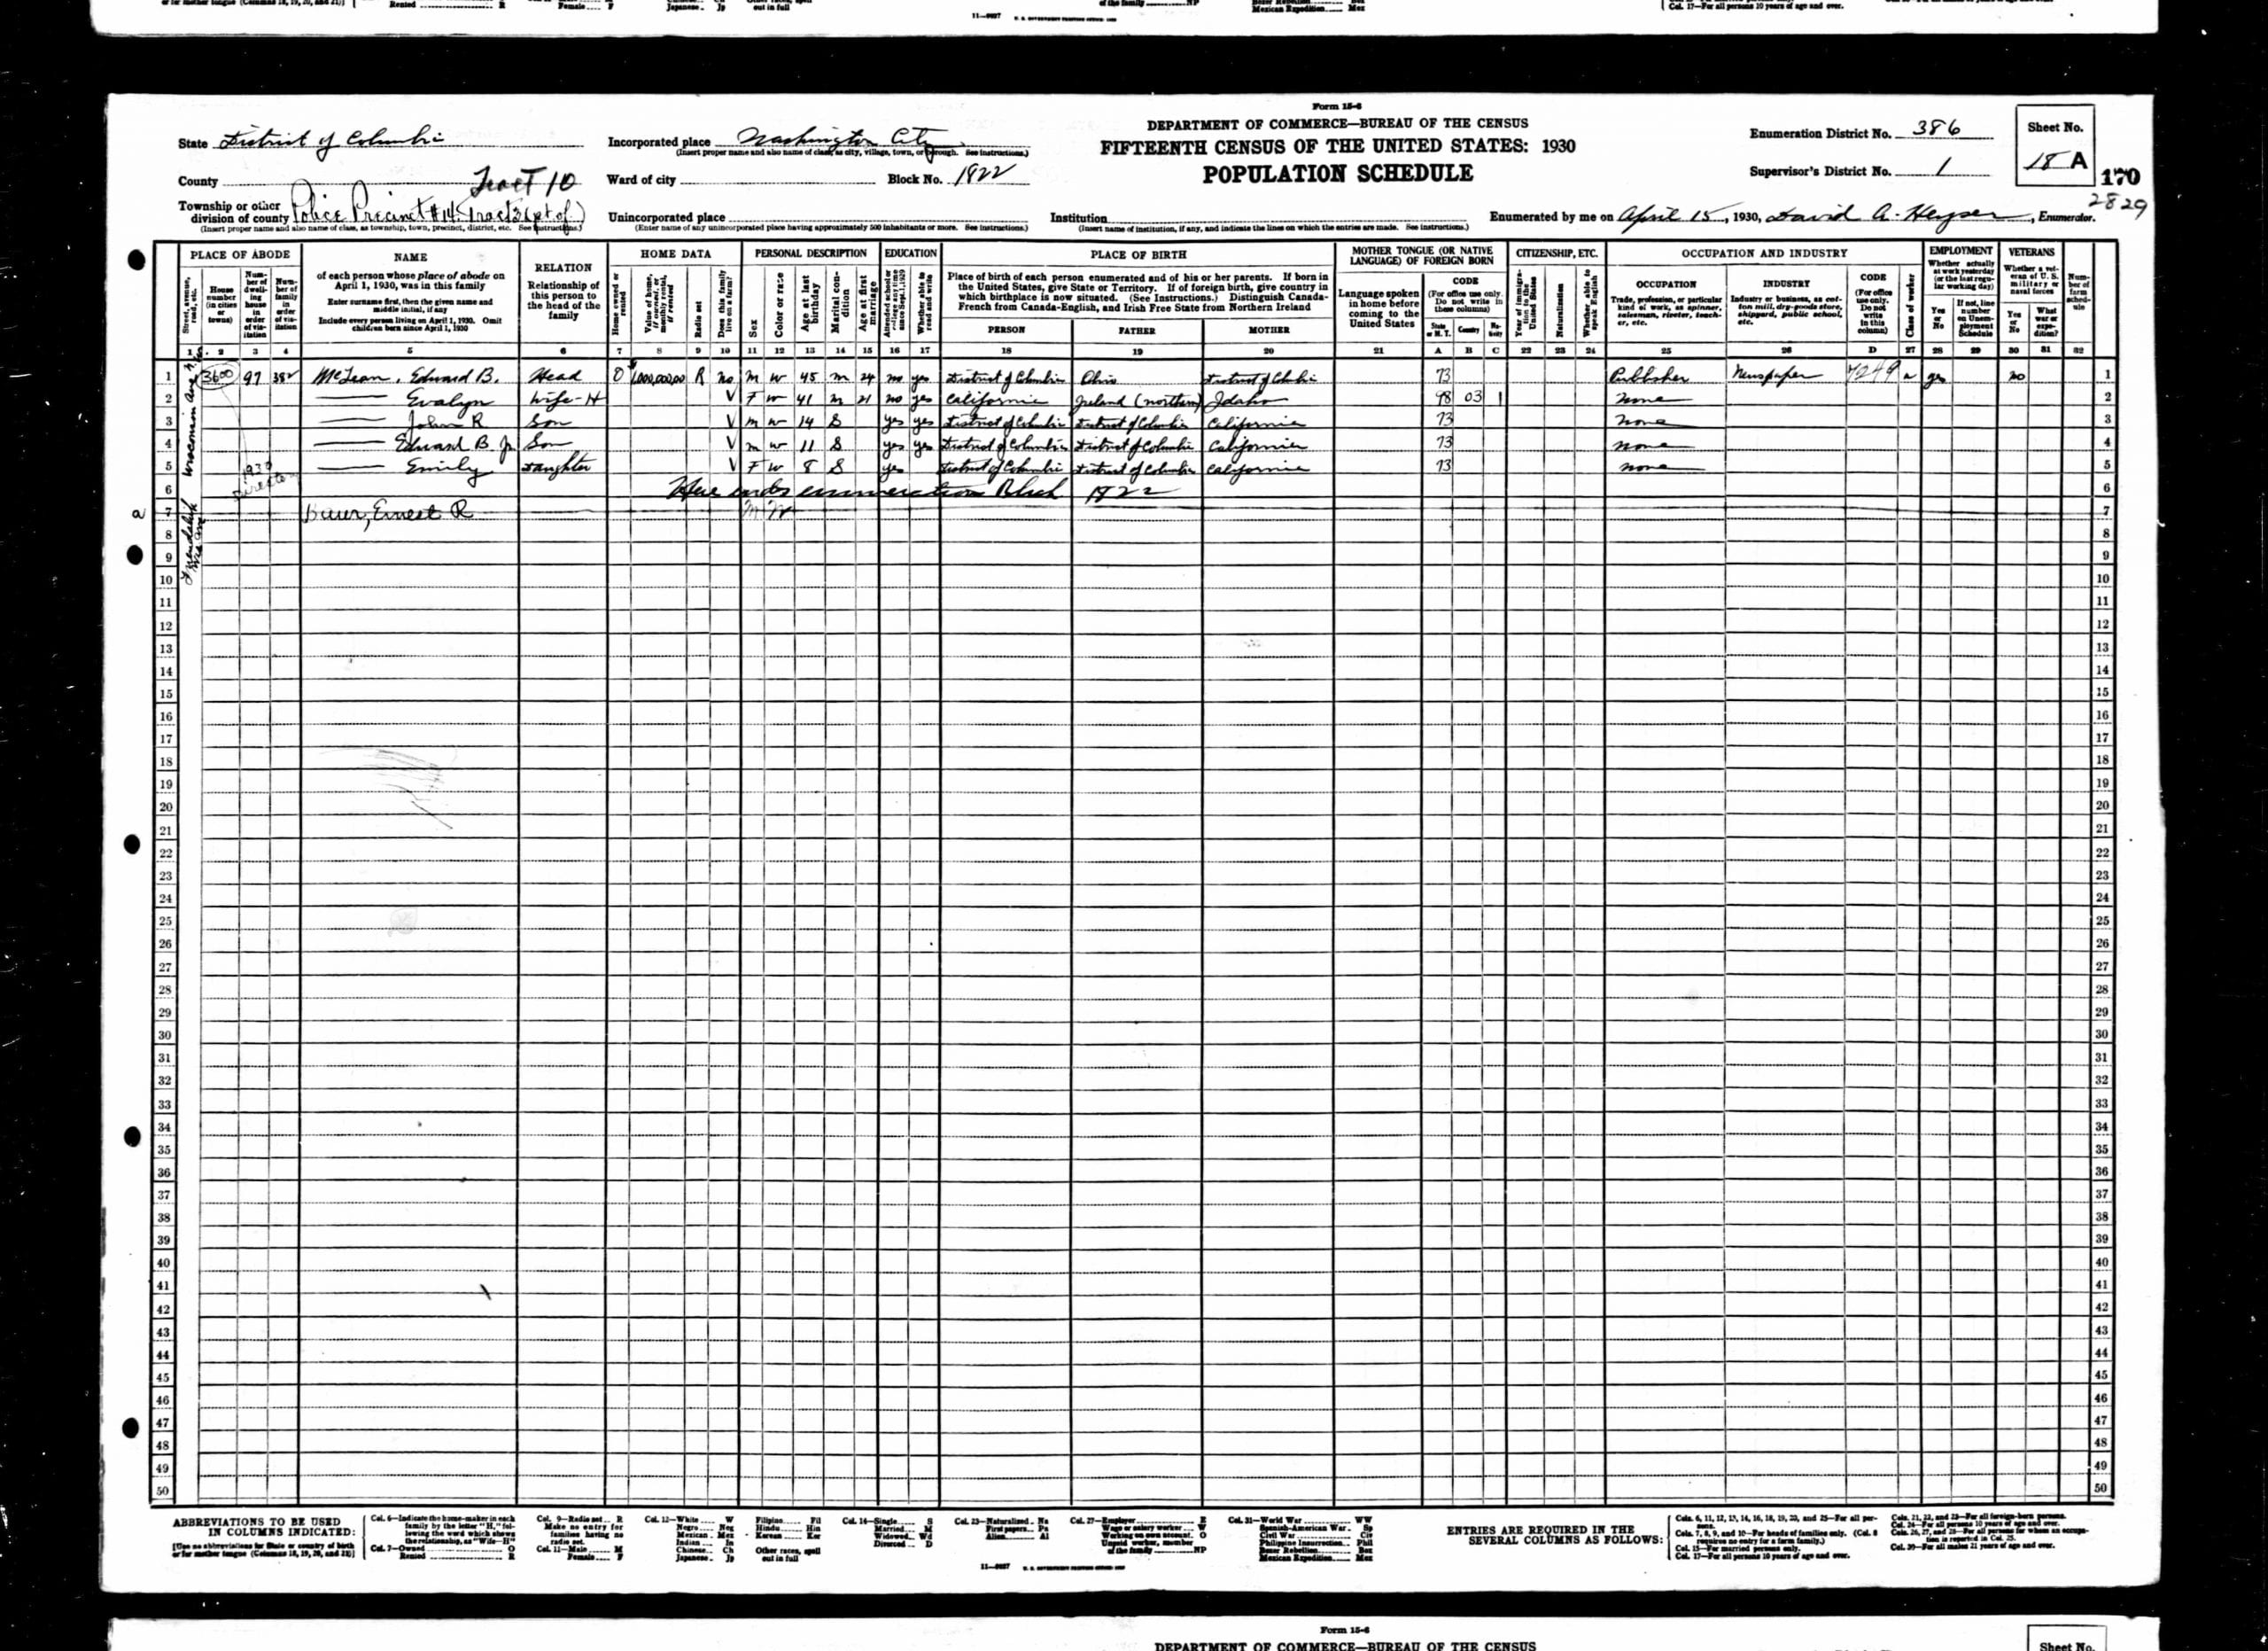 McLean family in the 1930 U.S. Census